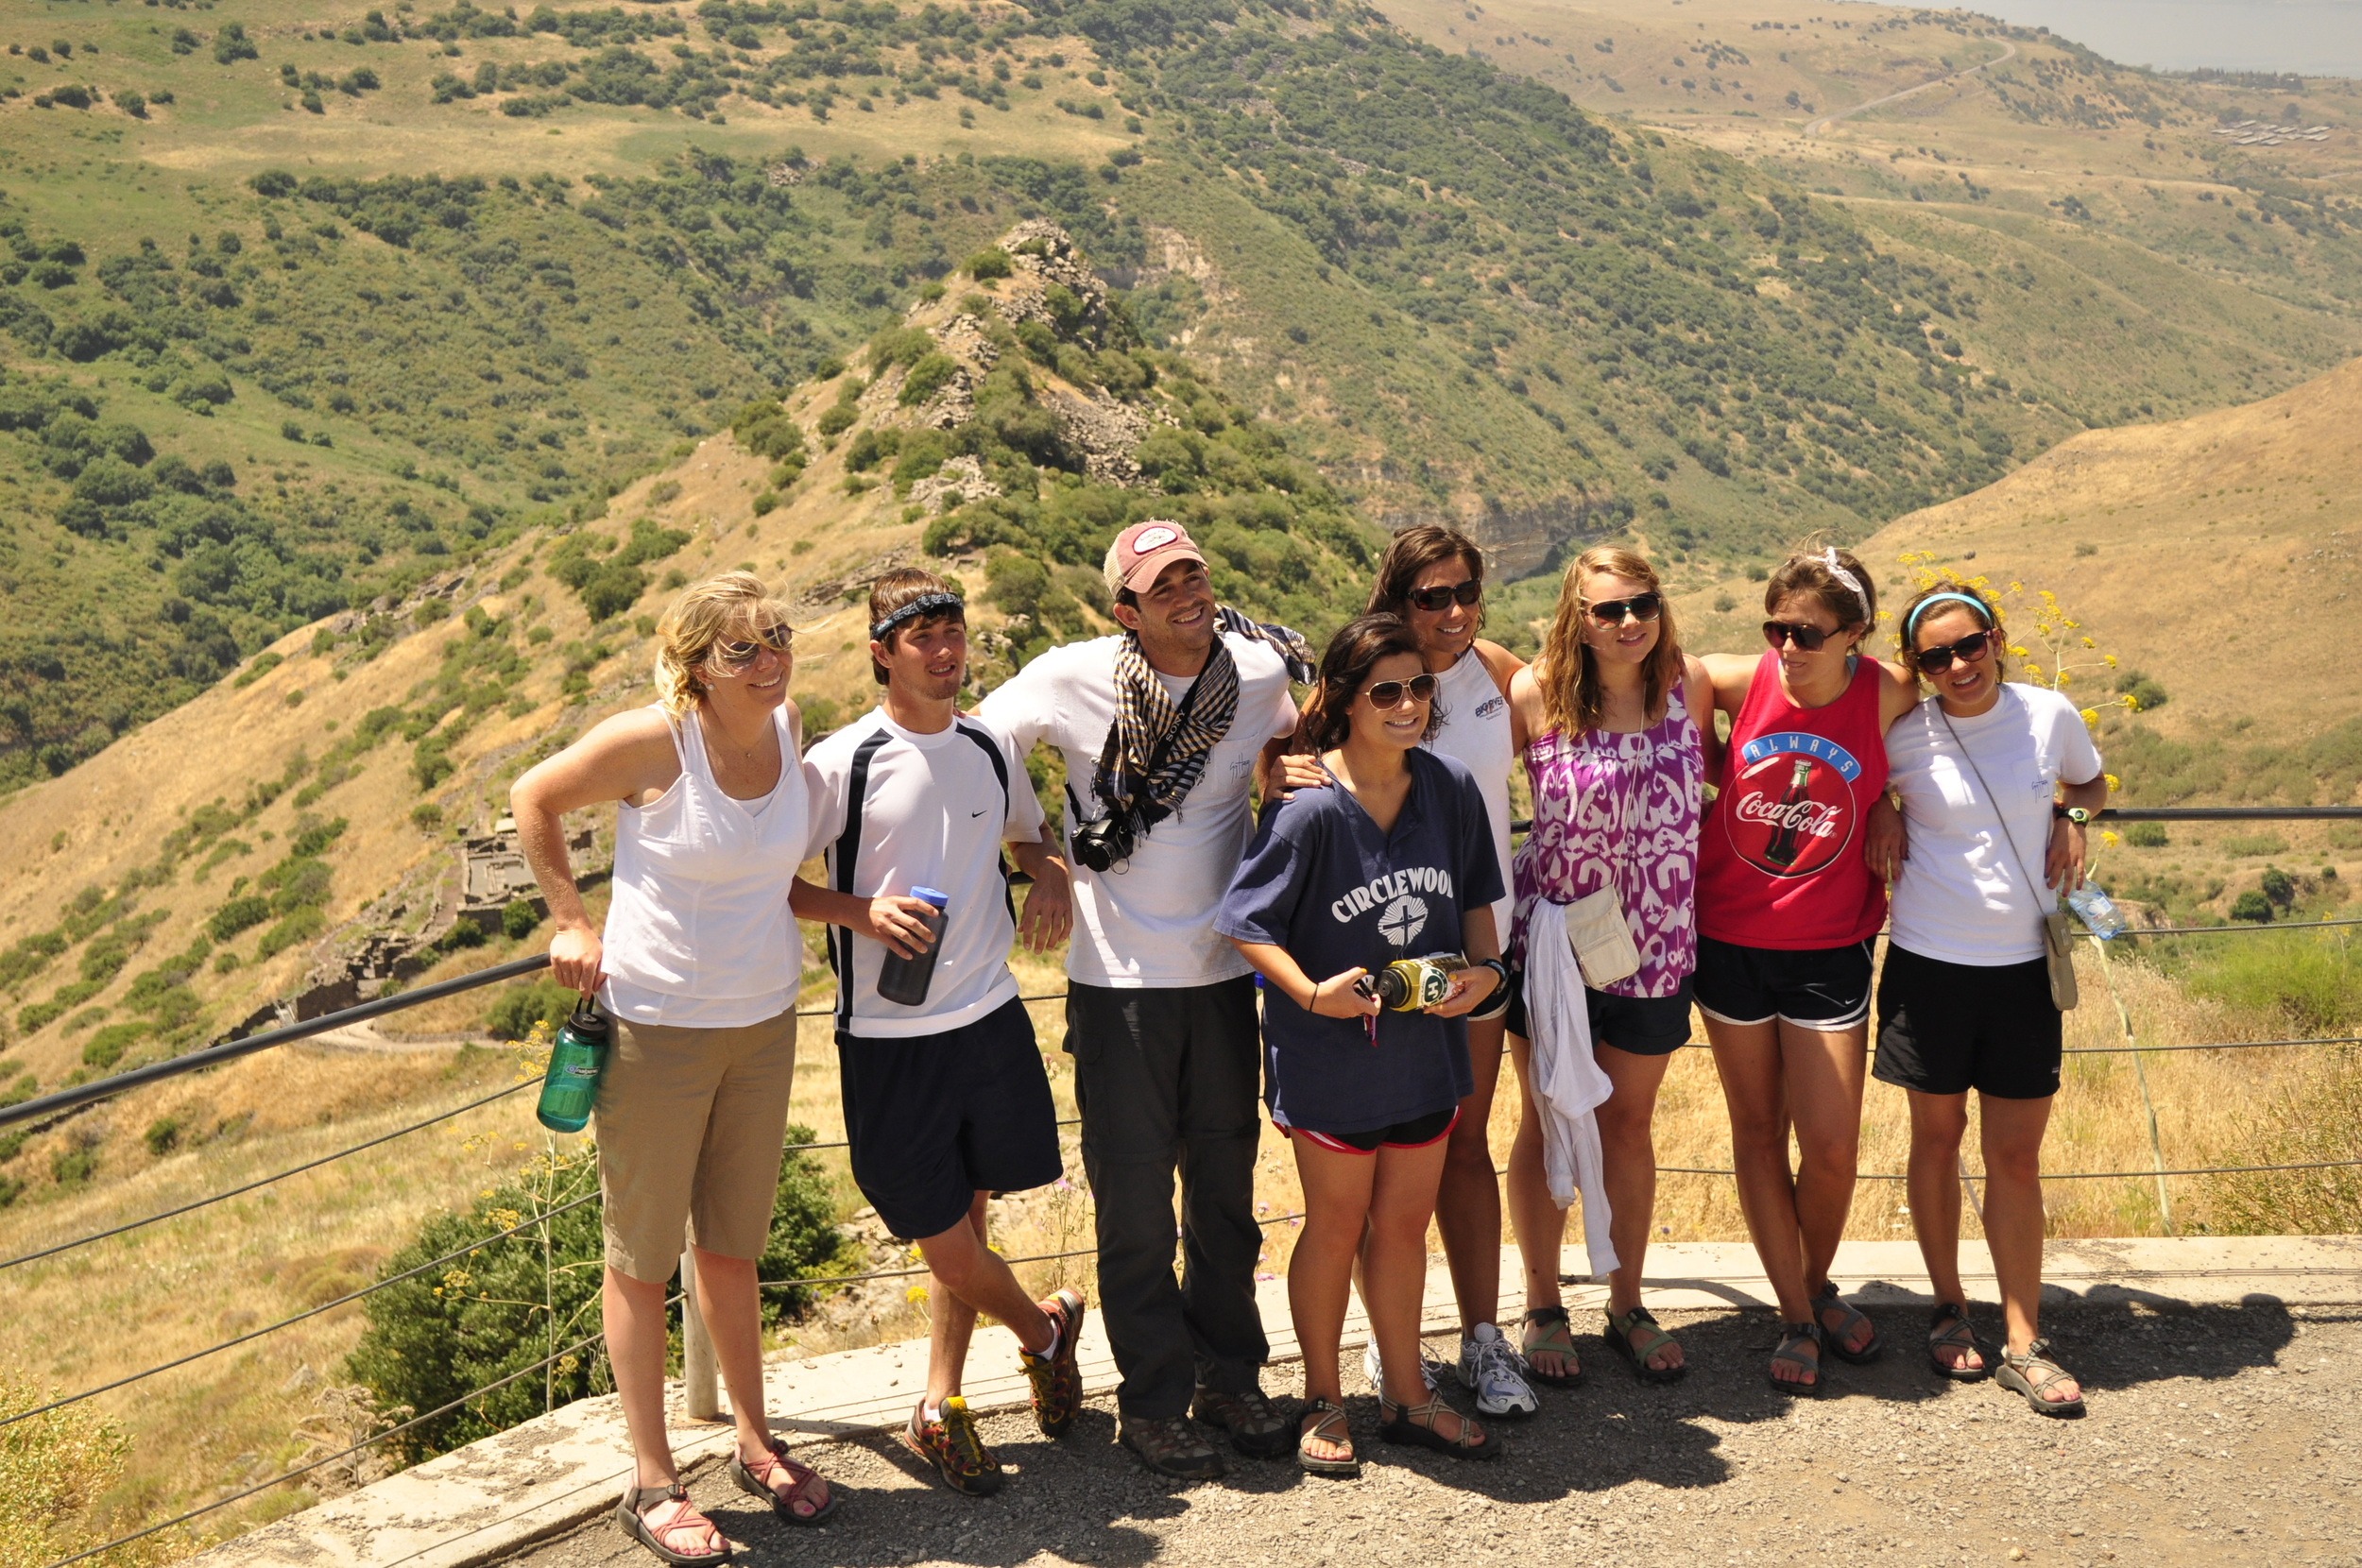 Morgan in Israel with her Legacy class of 2010. (She is in the Coke tank-top)